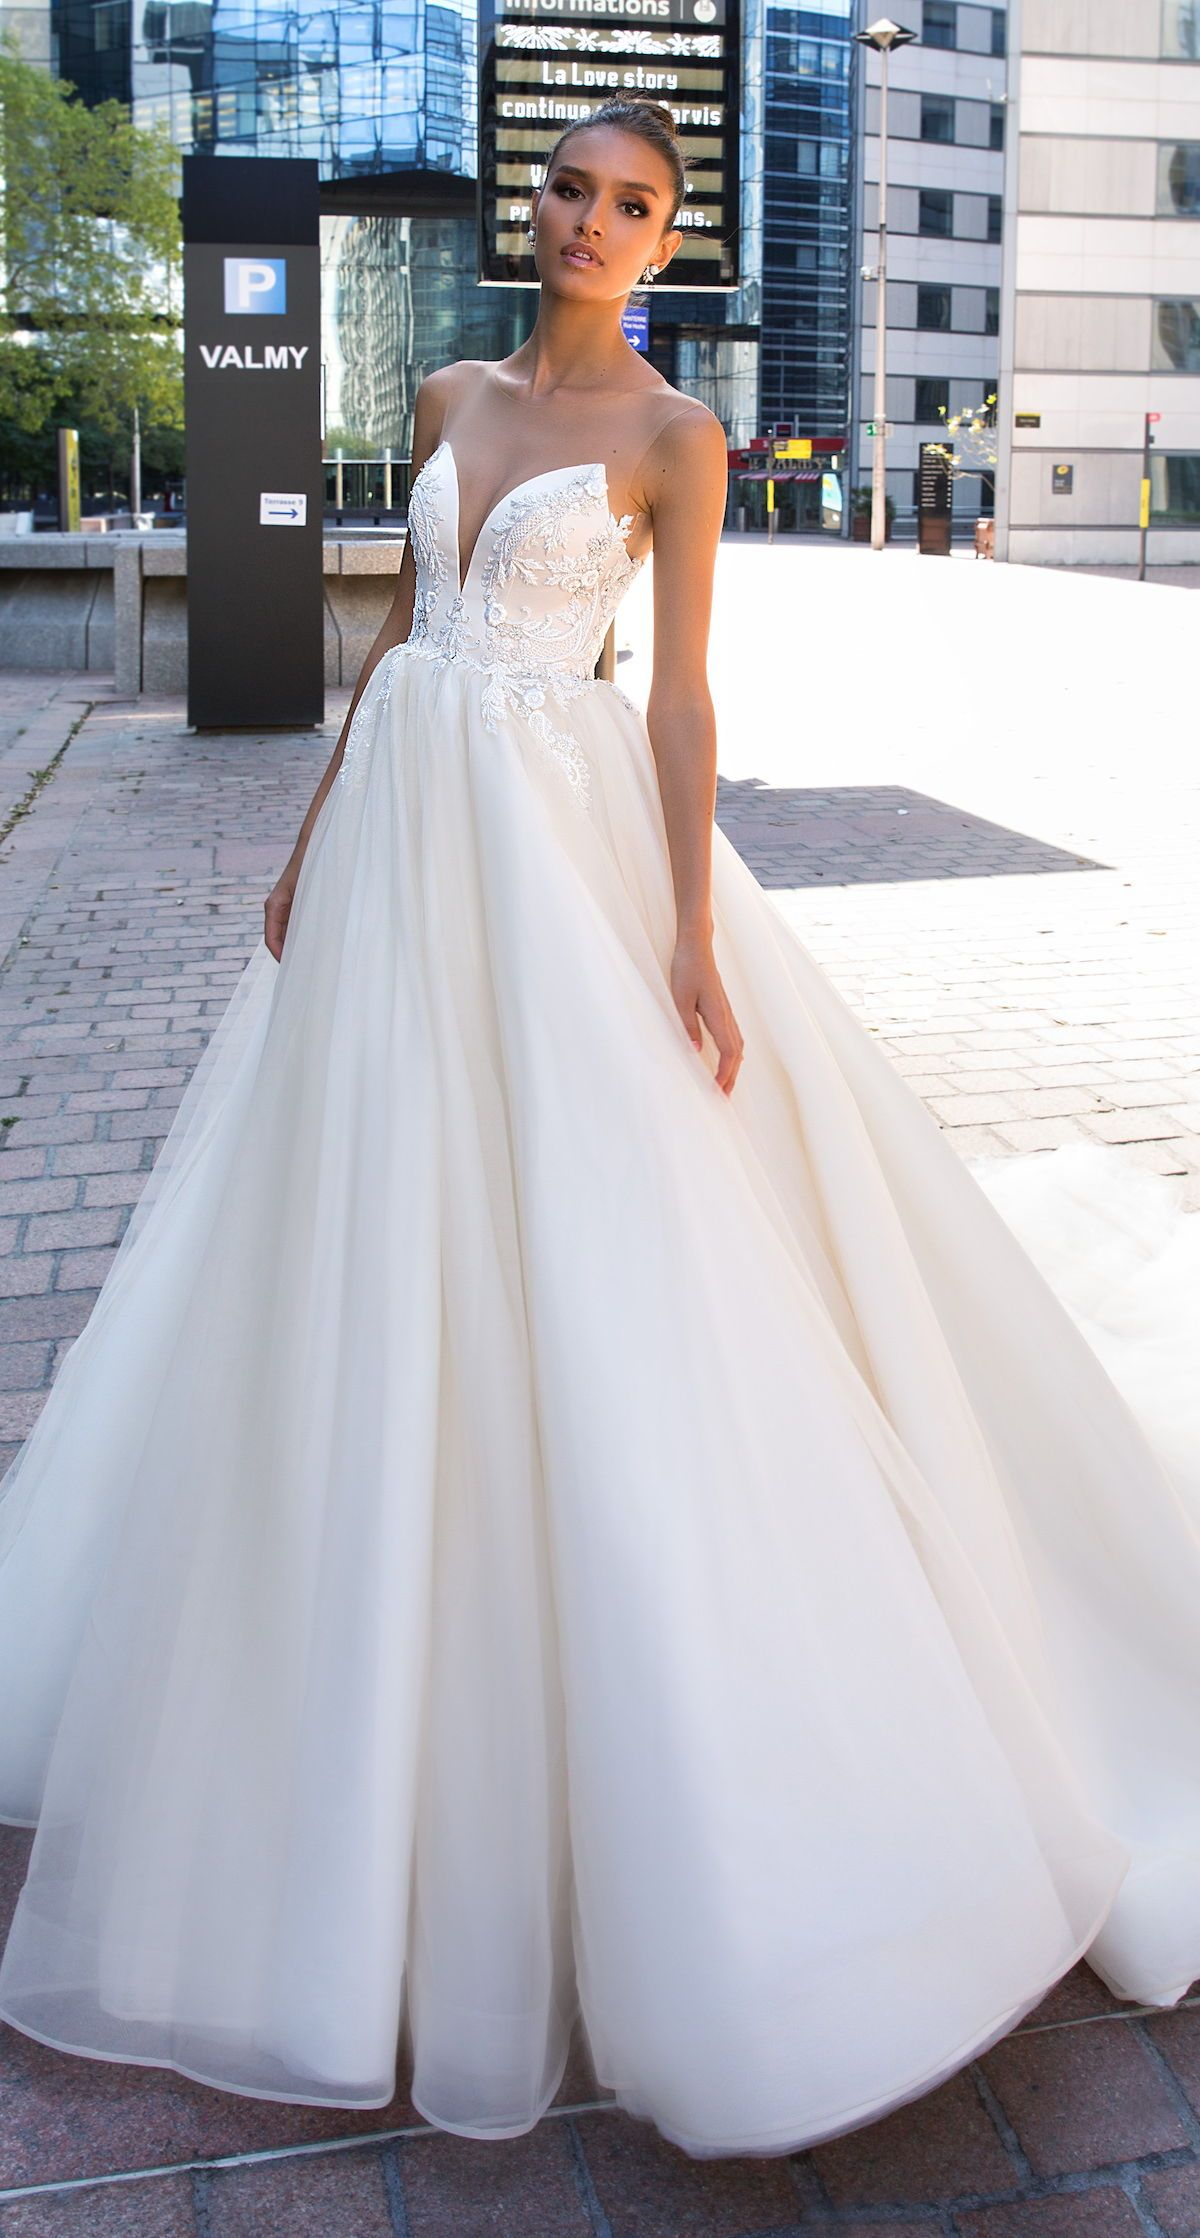 Ball gown wedding dress by crystal design strapless illusion